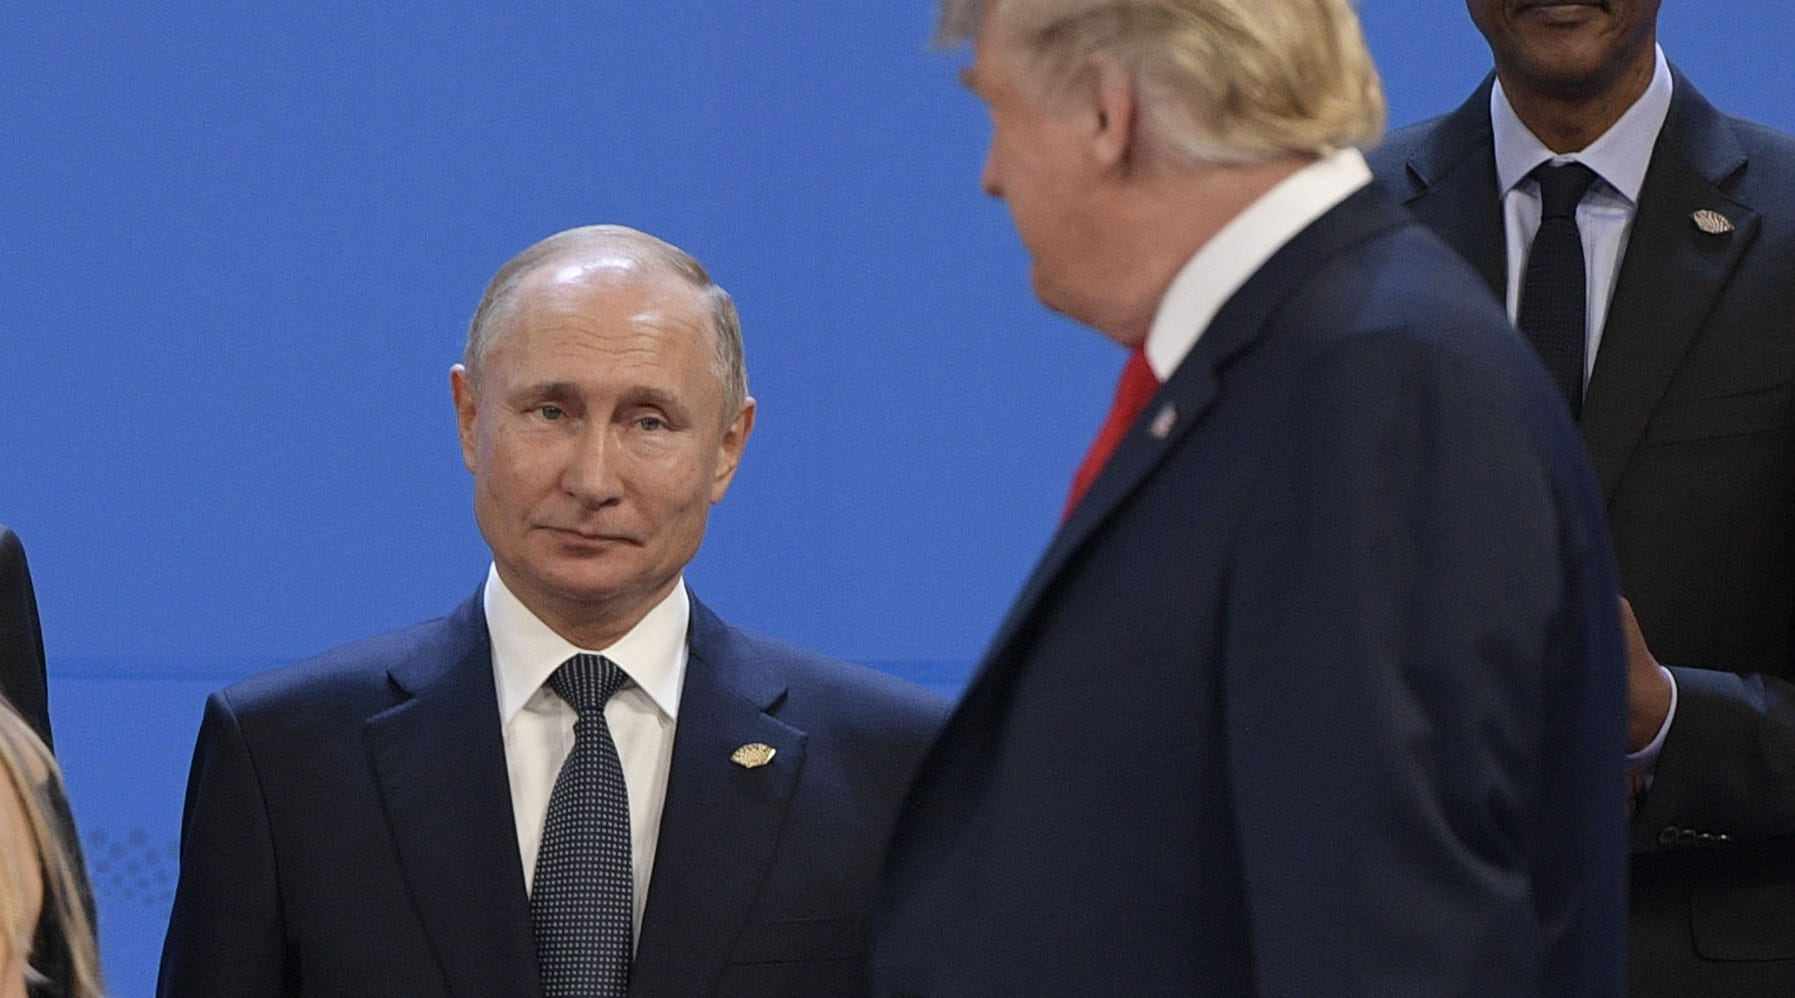 President Donald Trump looks at Russian President Vladimir Putin during group photo preparation during the G20 summit in Buenos Aires on November 30, 2018.